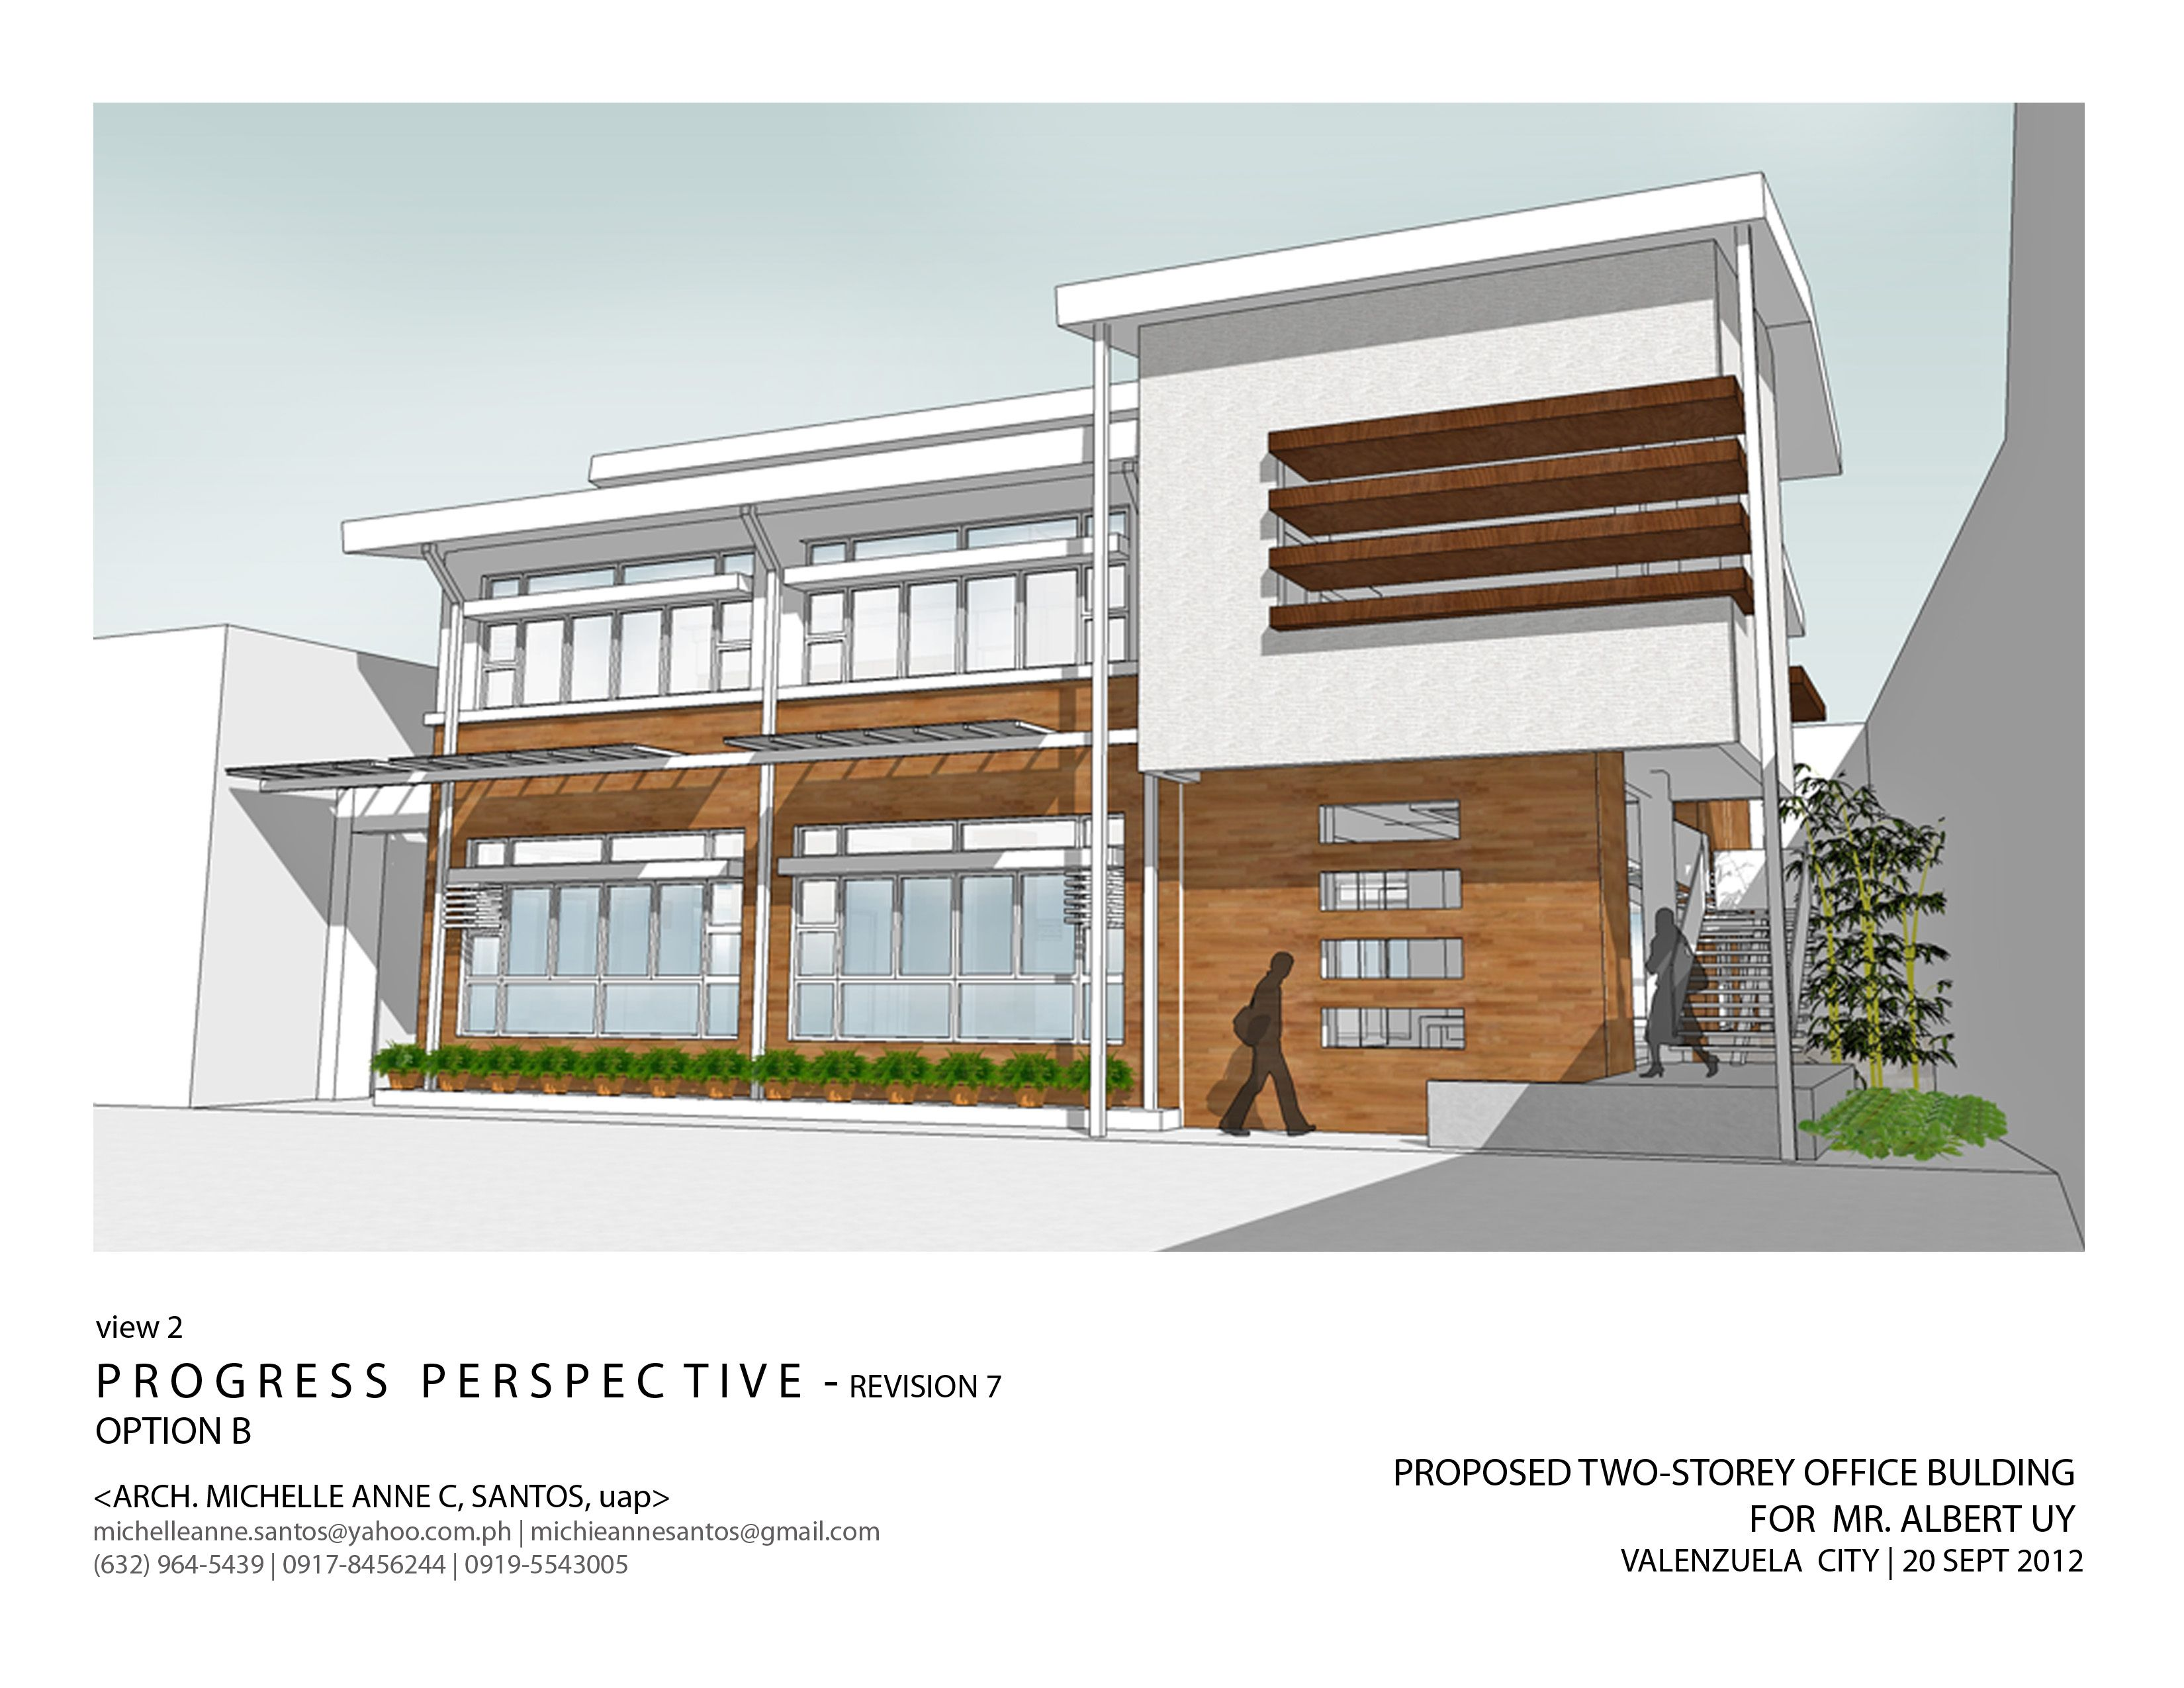 Architecture And Interior Design By Michelle Anne Santos At Another Option Of The Proposed 2 Storey Offic Building Design Office Building Office Building Plans